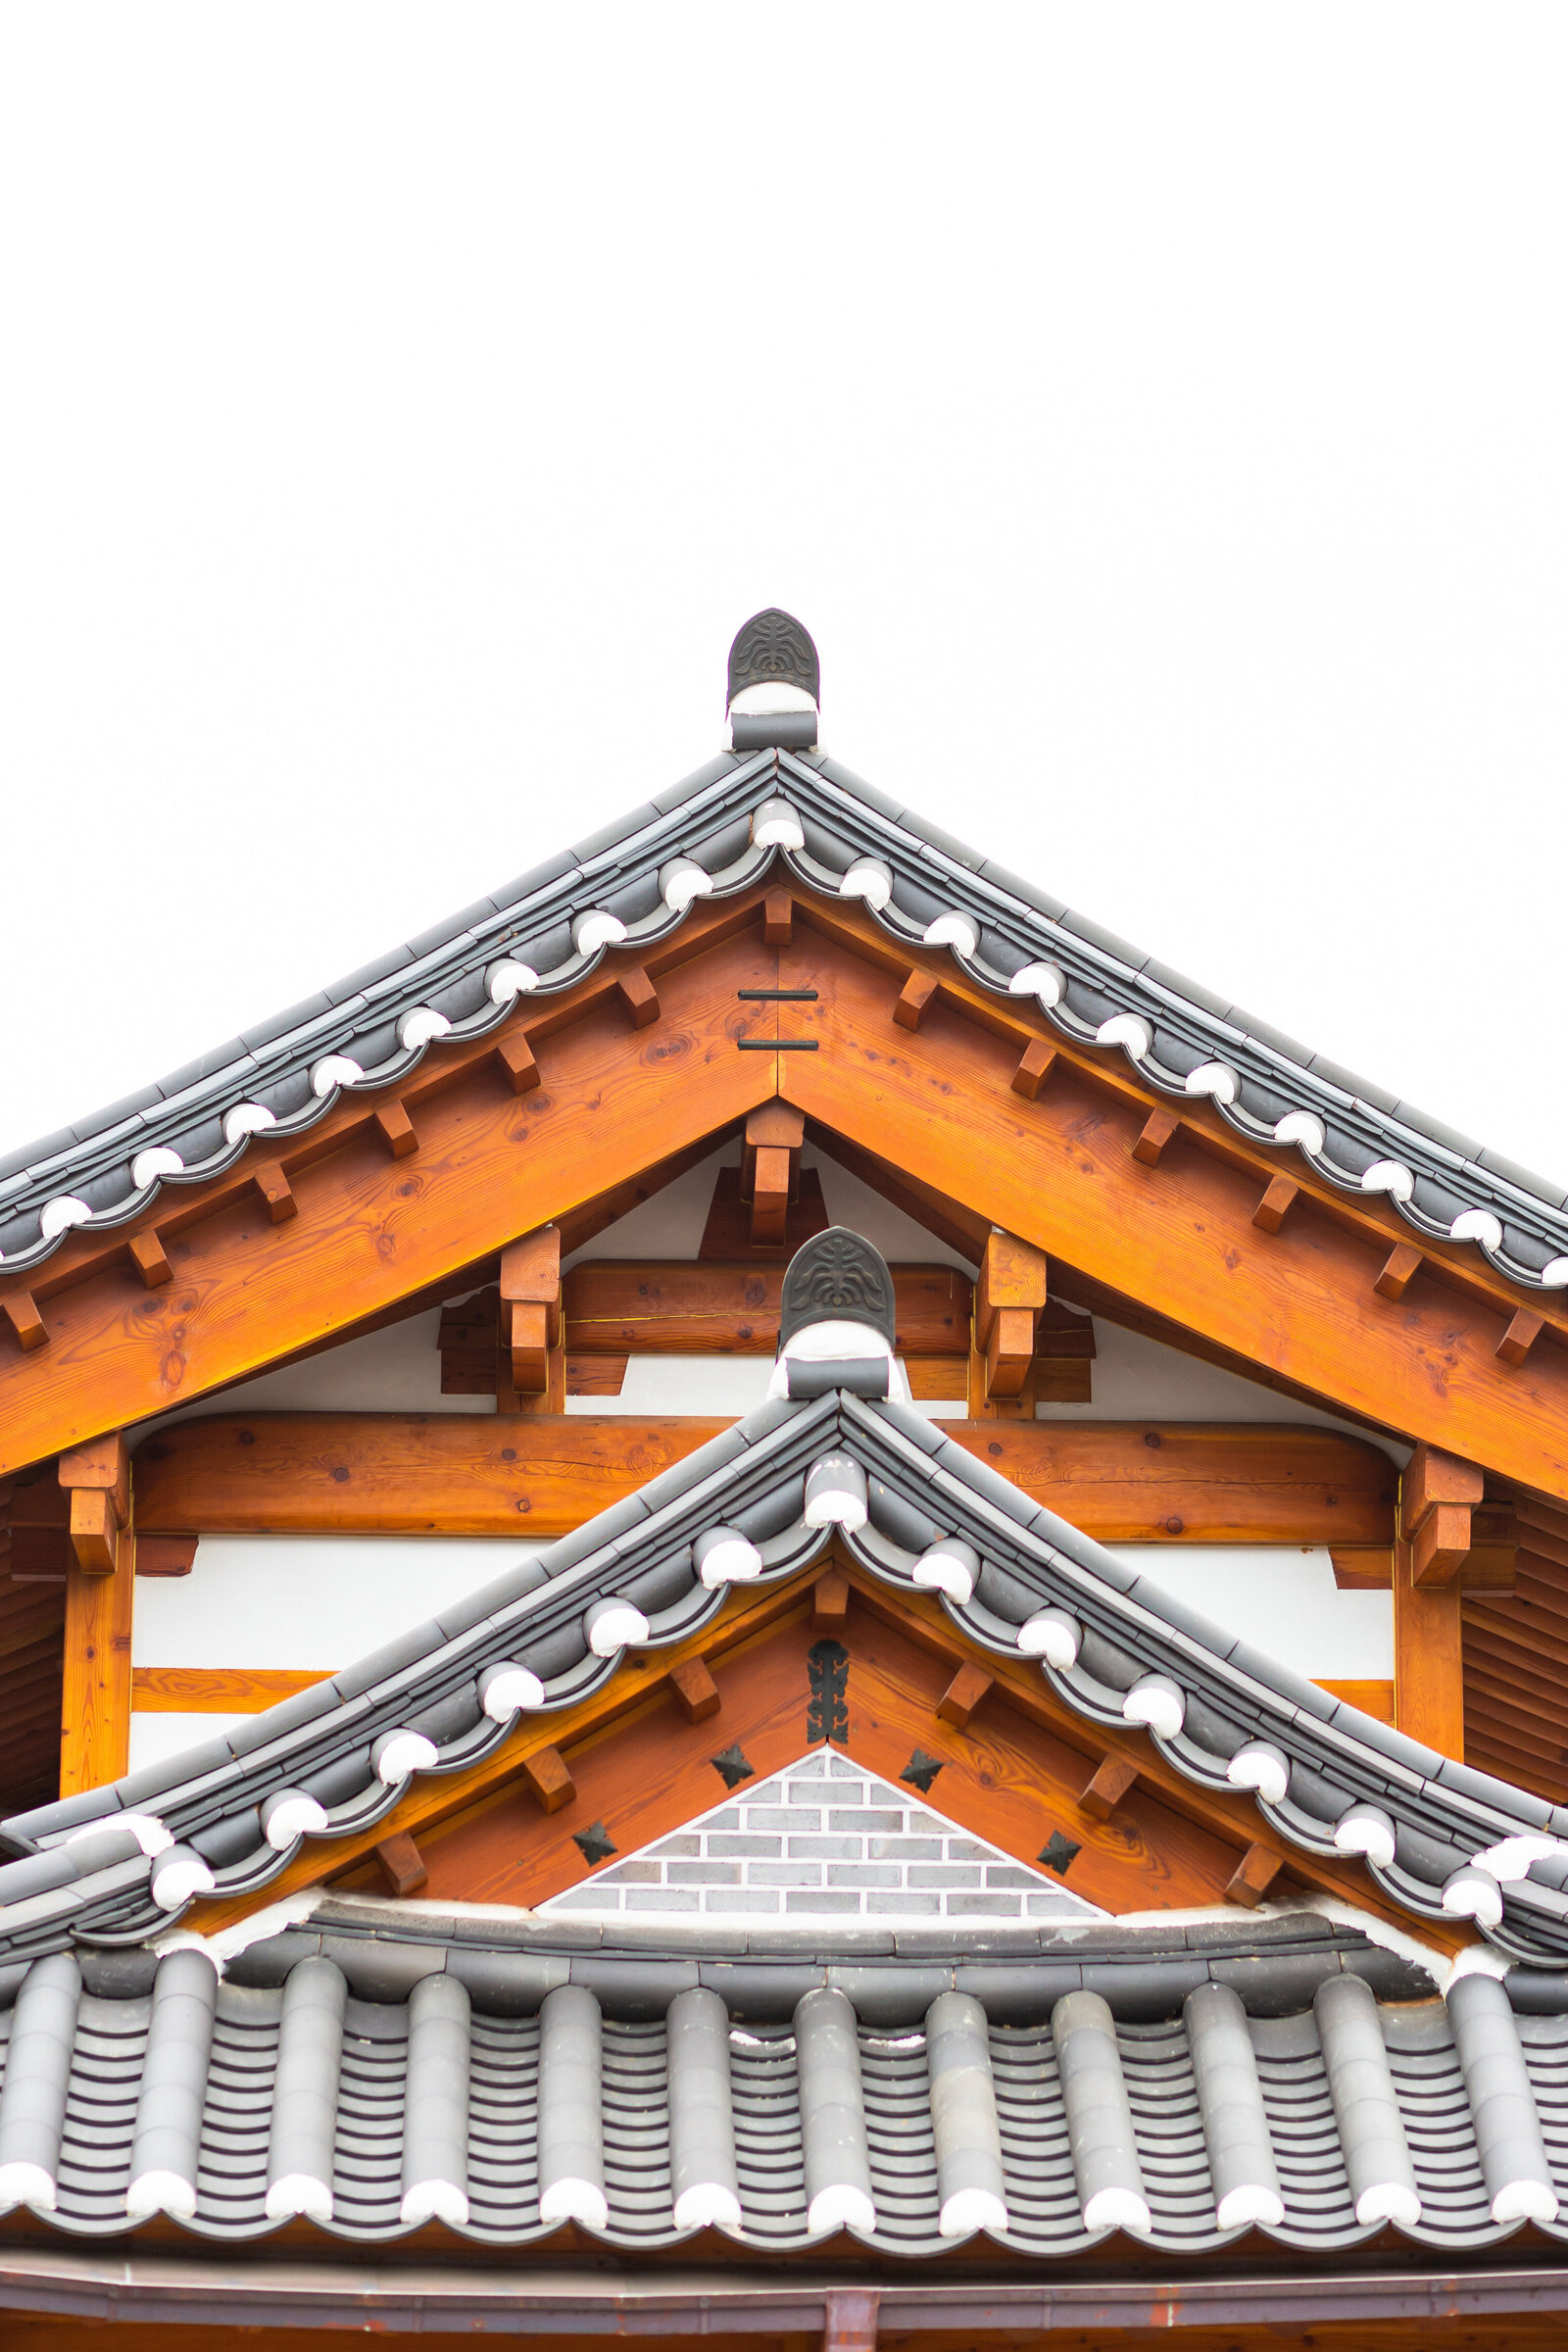 055-KBP-South-korea-Seoul-Eunpyeong-Hanok-Village-1